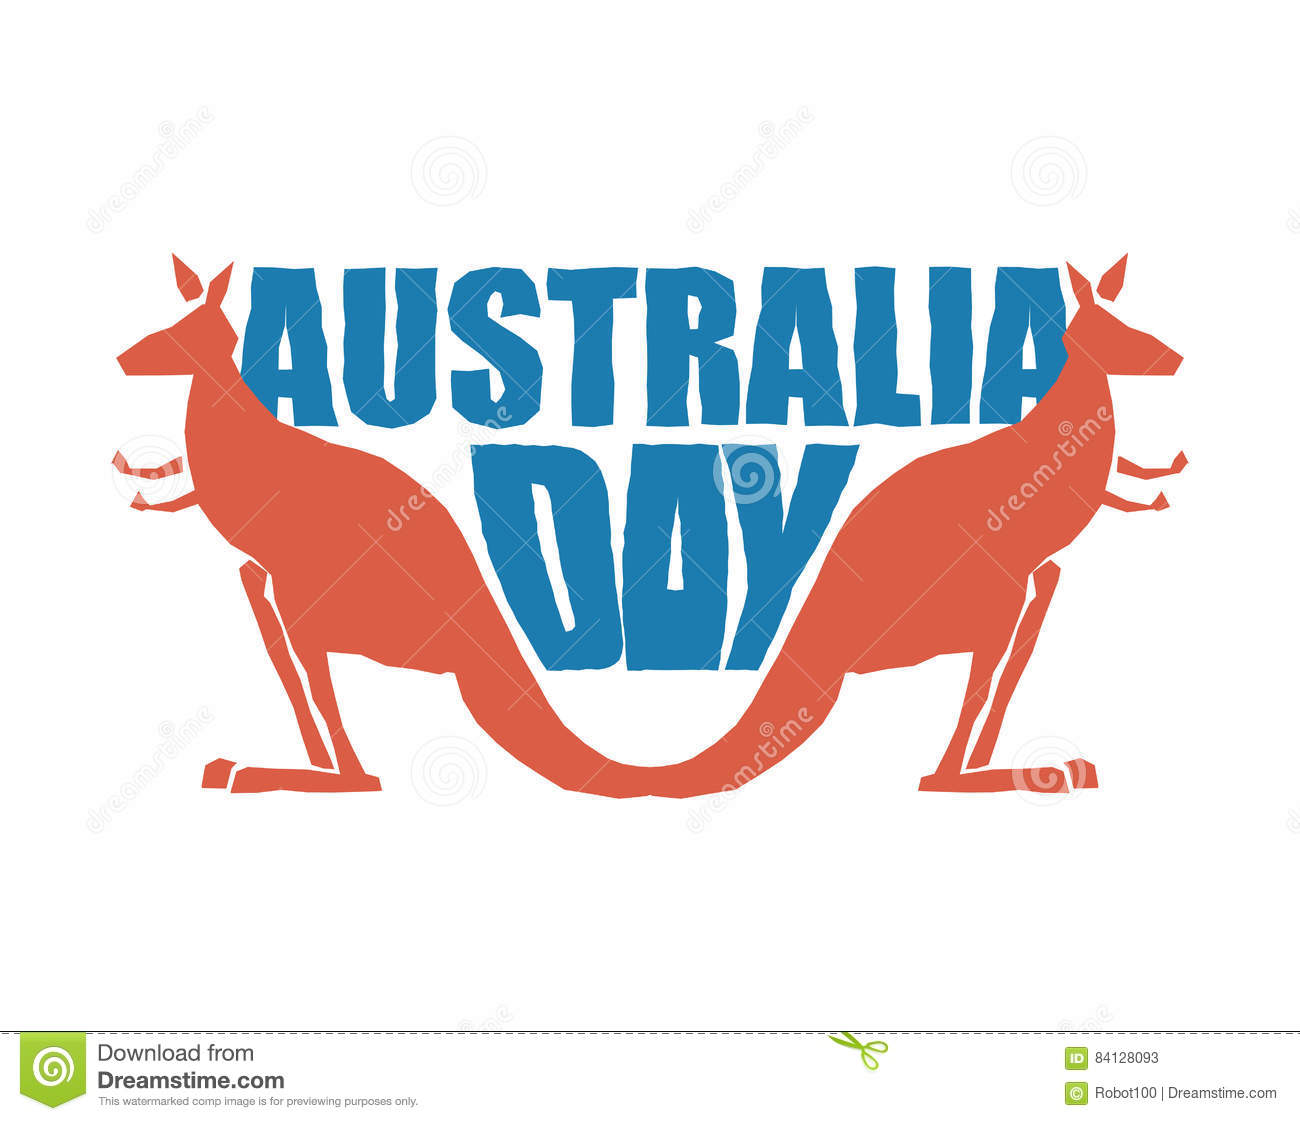 Subtract days from date in Australia